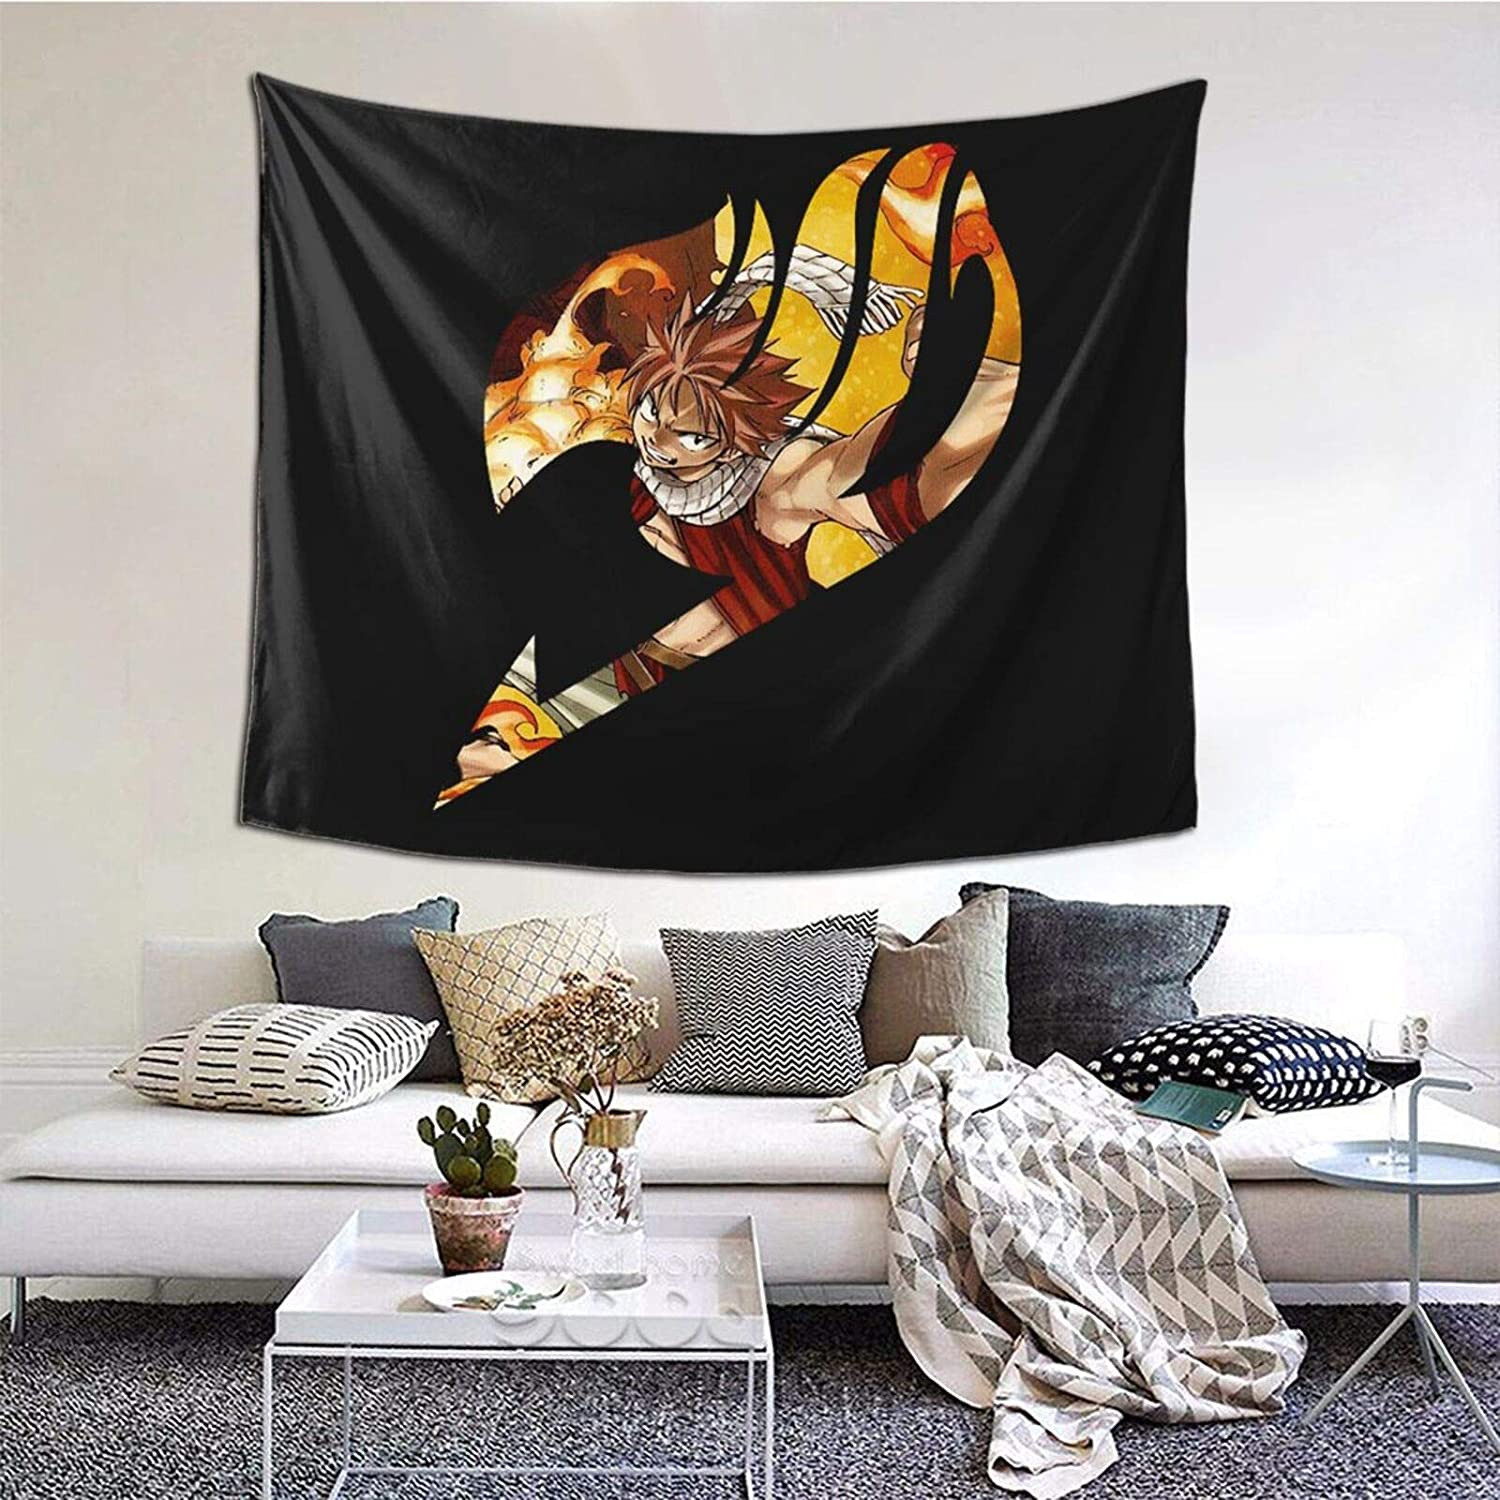 Dekeyue Fairy Tail Natsu Anime Tapestry Psychedlic Lightweight Wall Hanging for Living Room Bedroom Decor 6051in